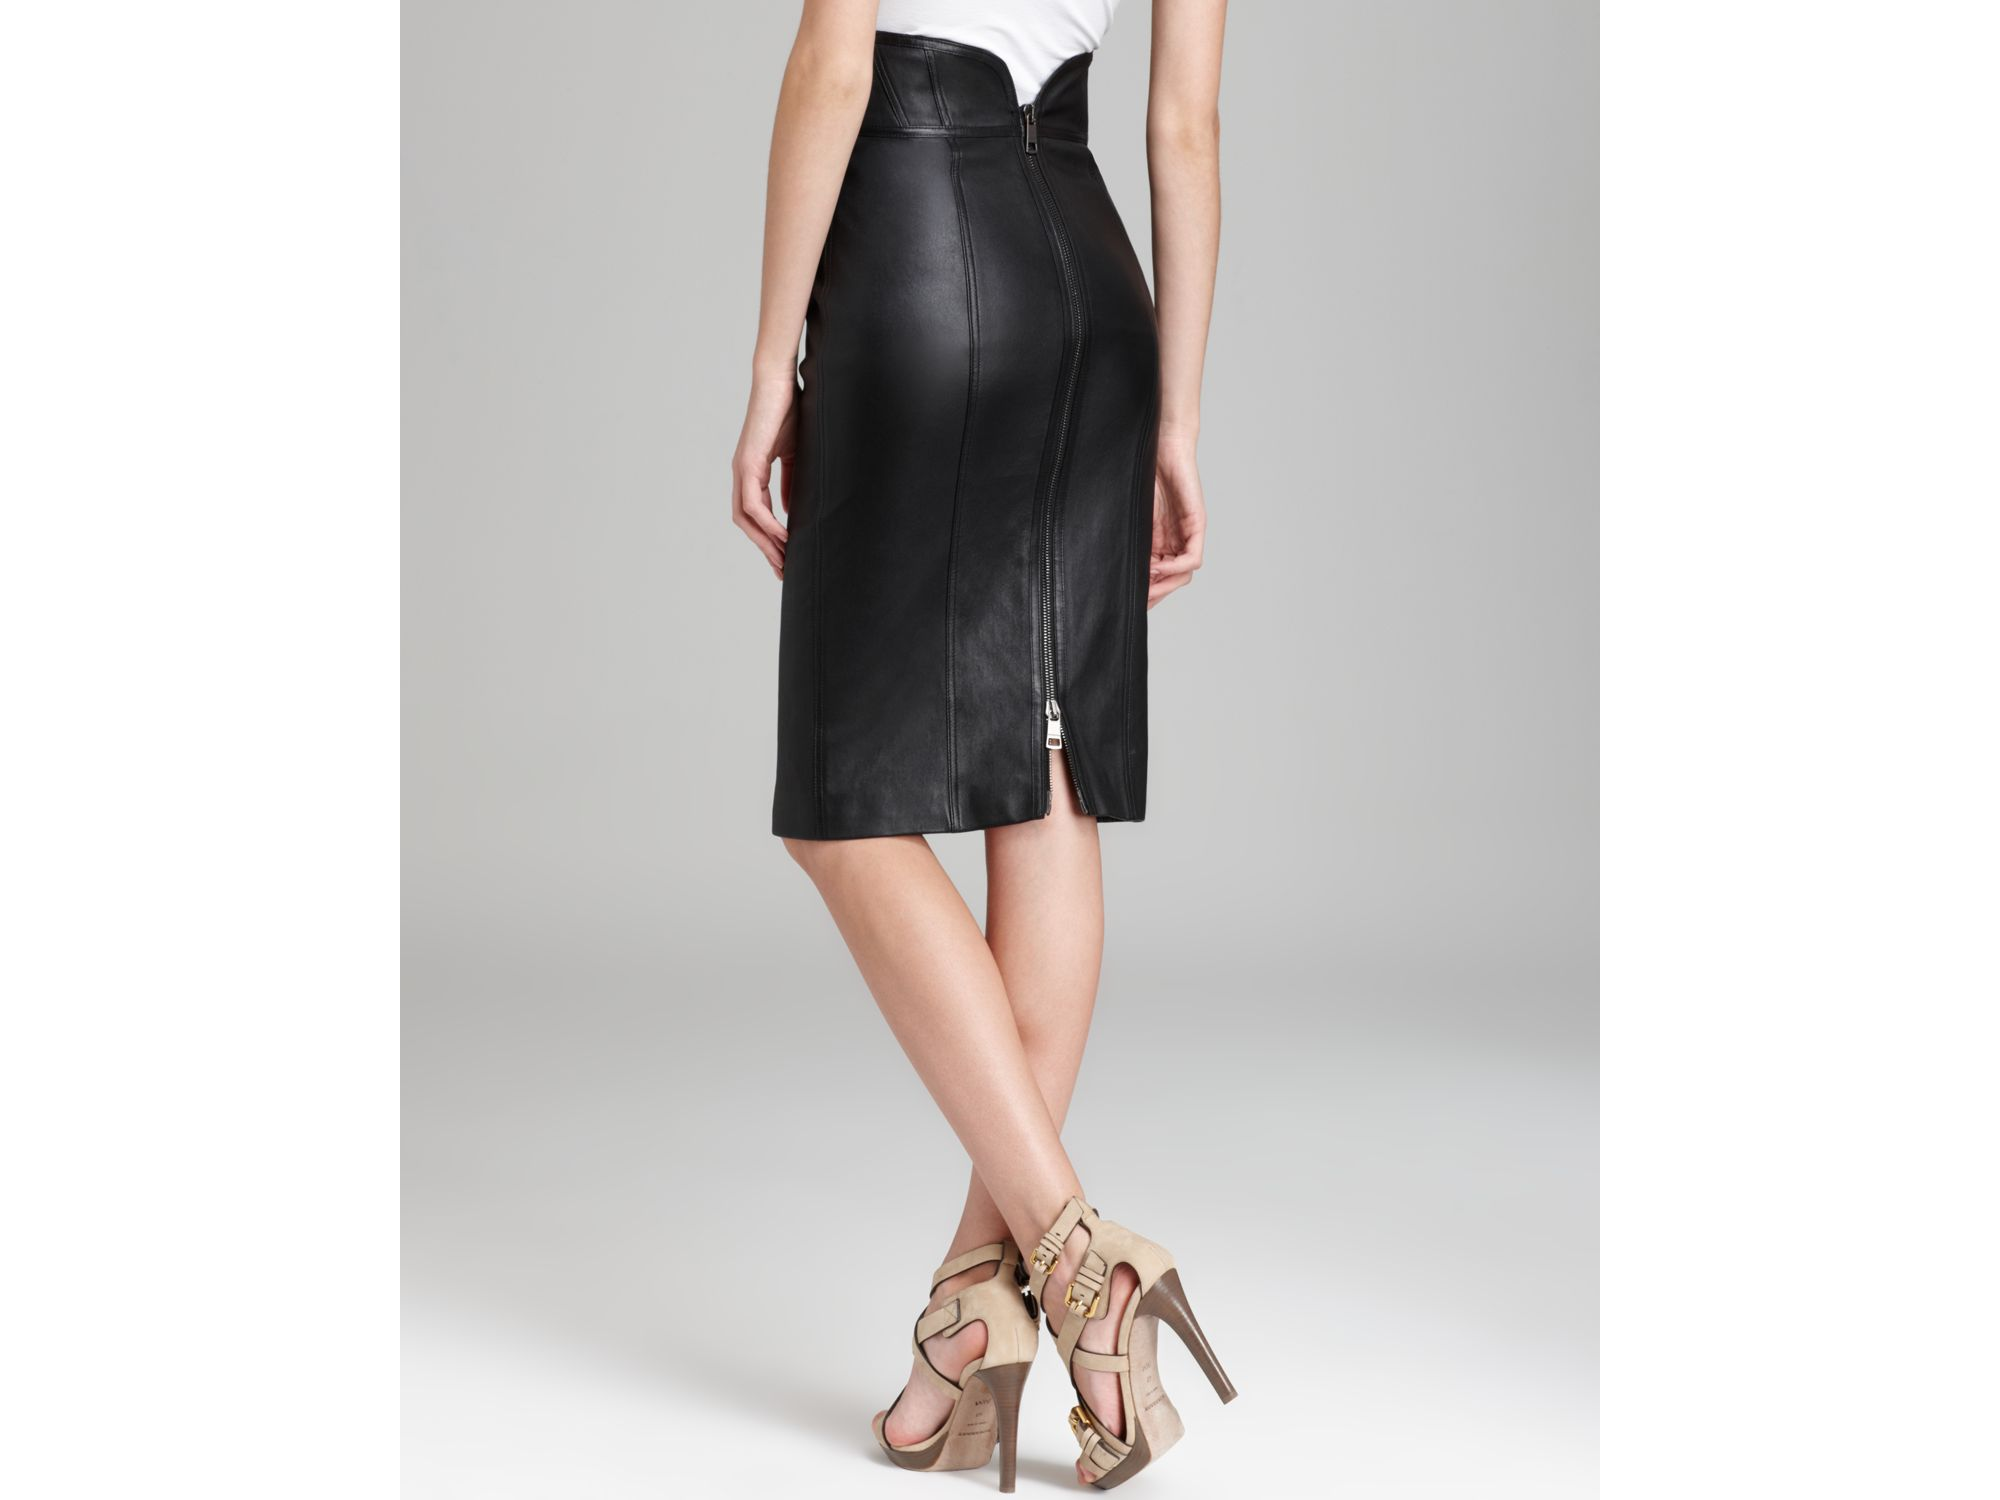 6802d70fa022 Gallery. Previously sold at: Bloomingdale's · Women's Black Leather Pencil  Skirts